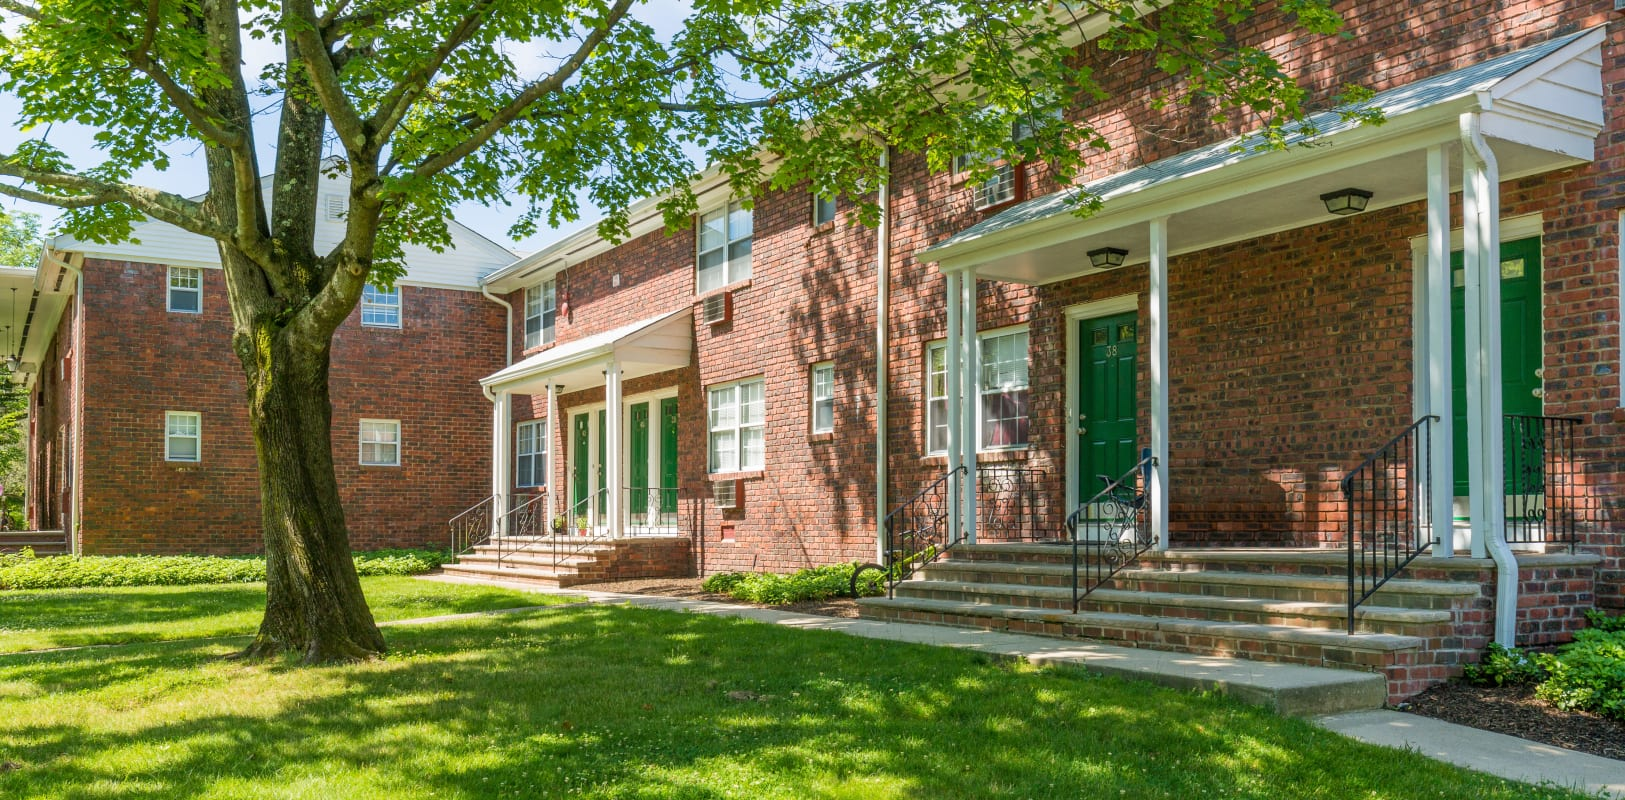 Nice shaded lawn next to brick building at Nottingham Manor in Montvale, New Jersey